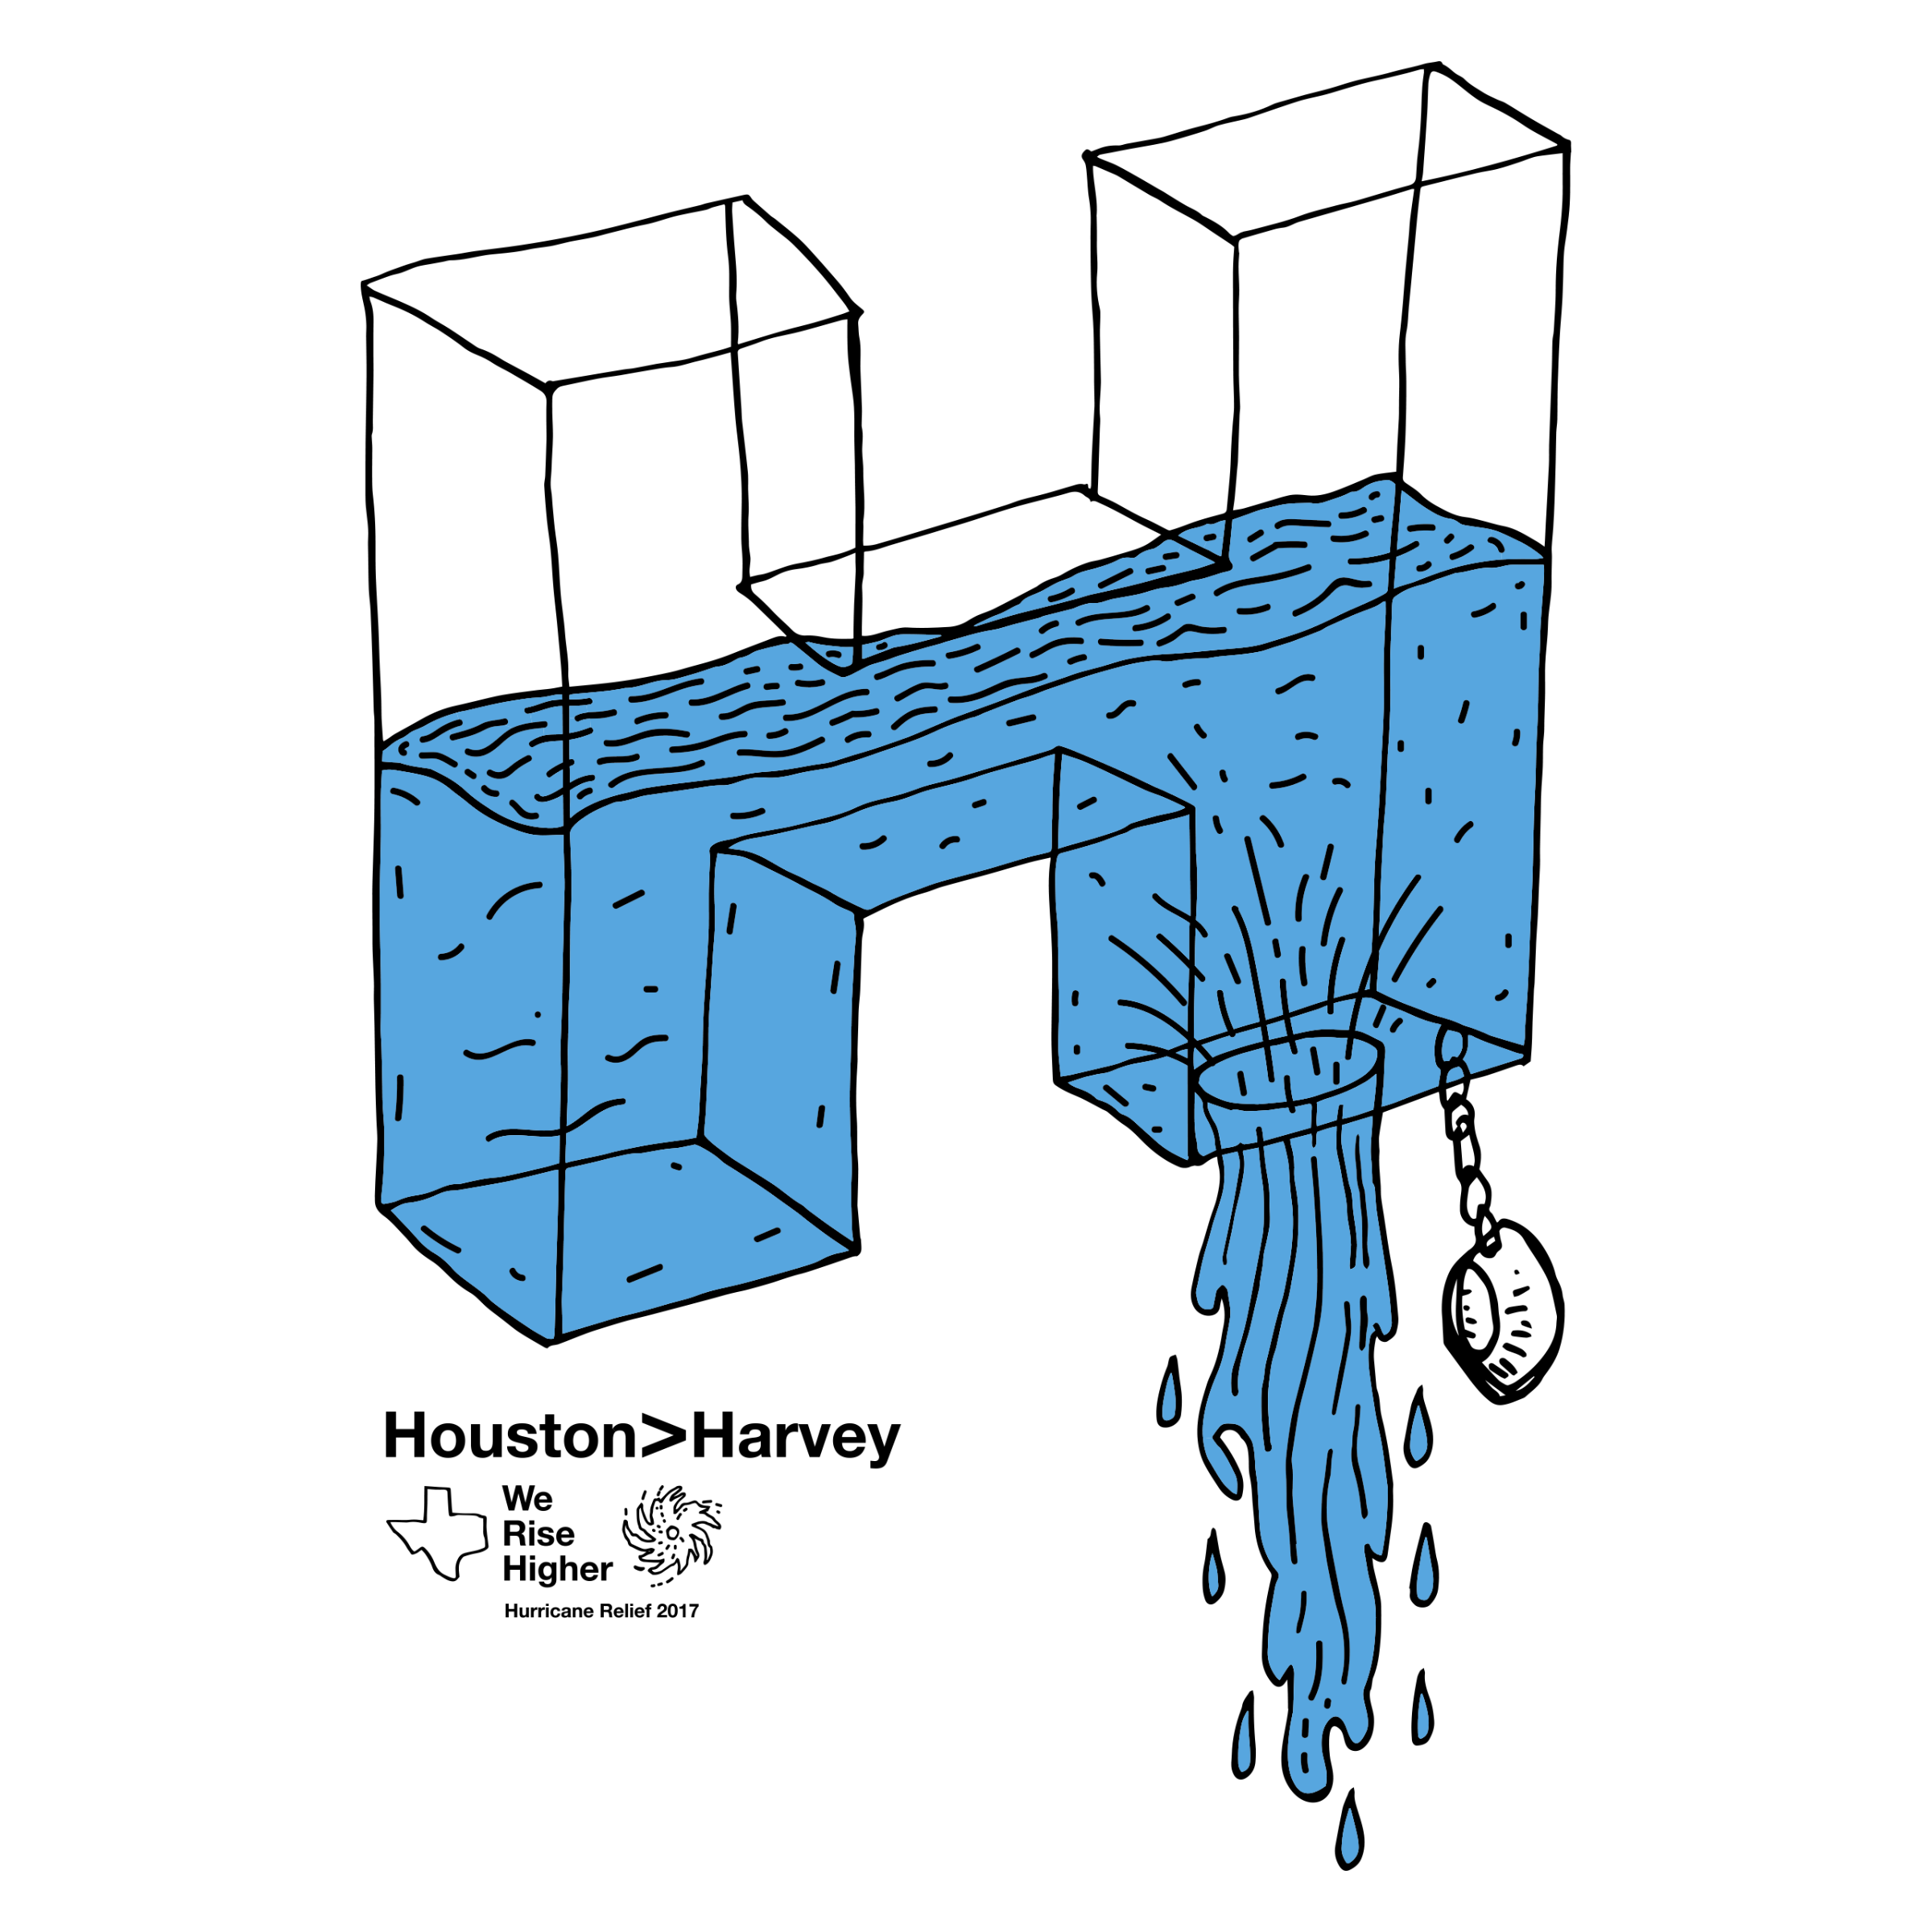 Houston>Harvey - Houston Flood Relief